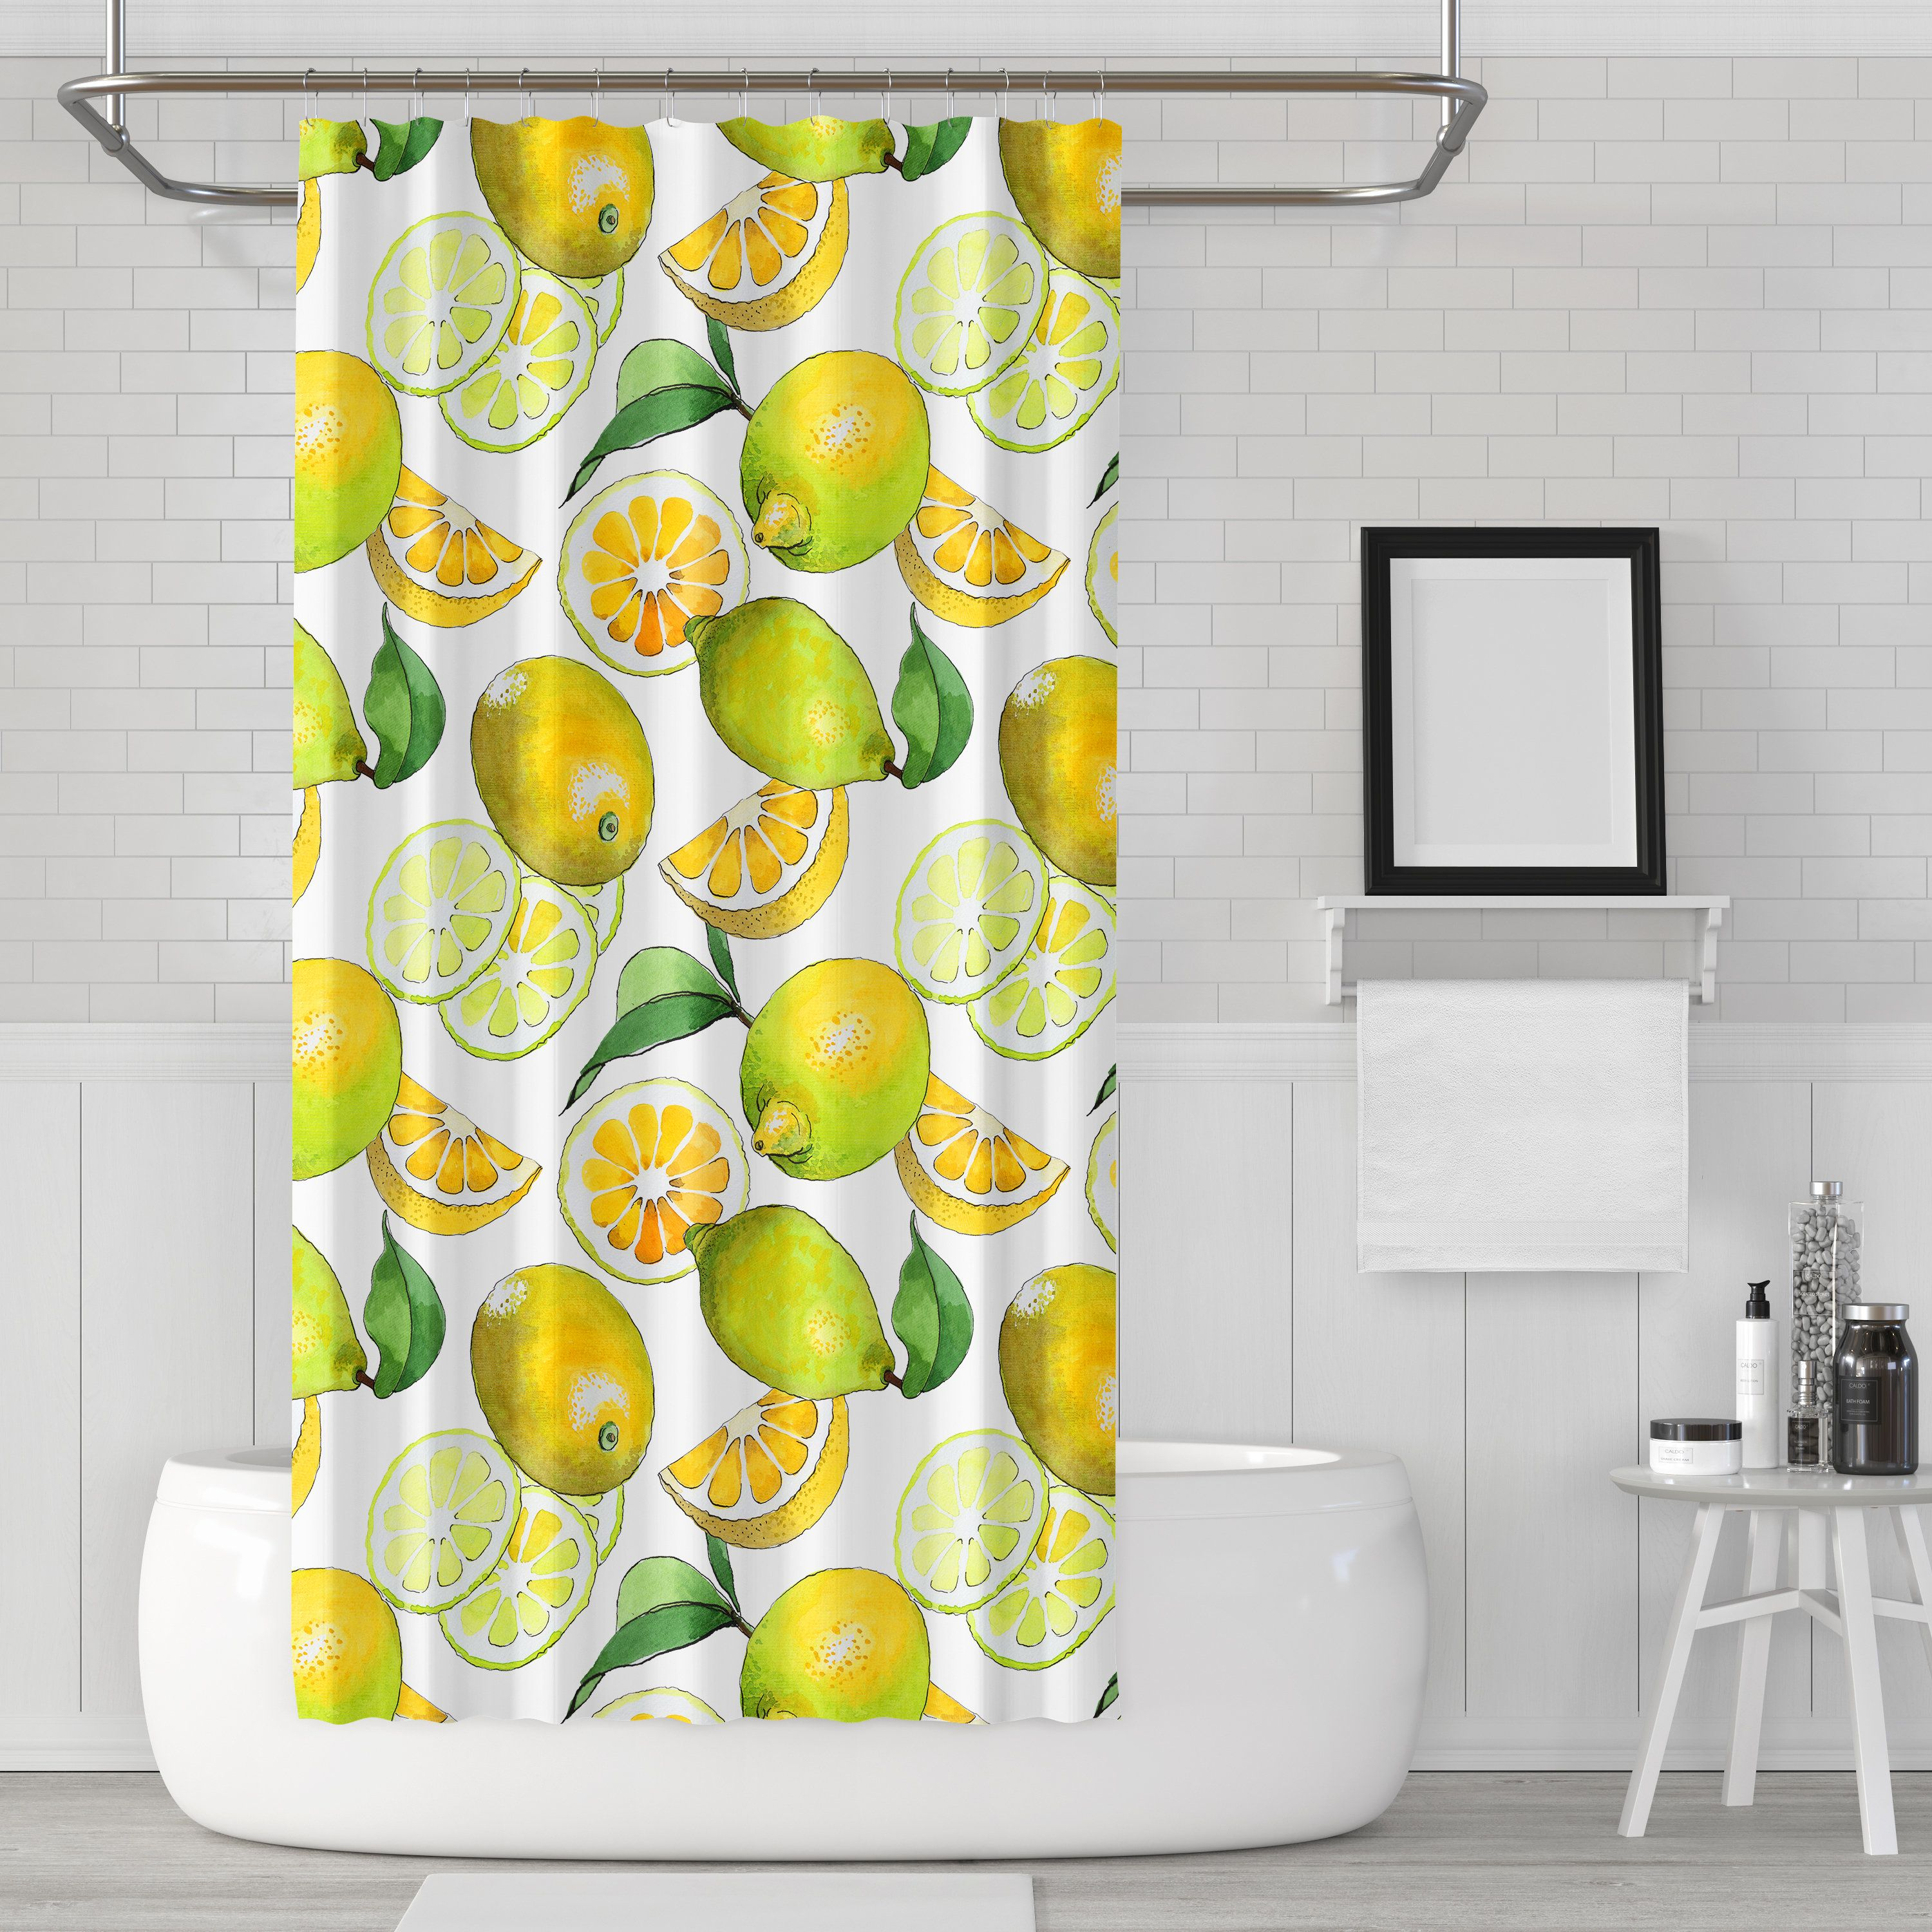 Lemon Shower Curtain Shower Curtain Lemons Shower Lemon